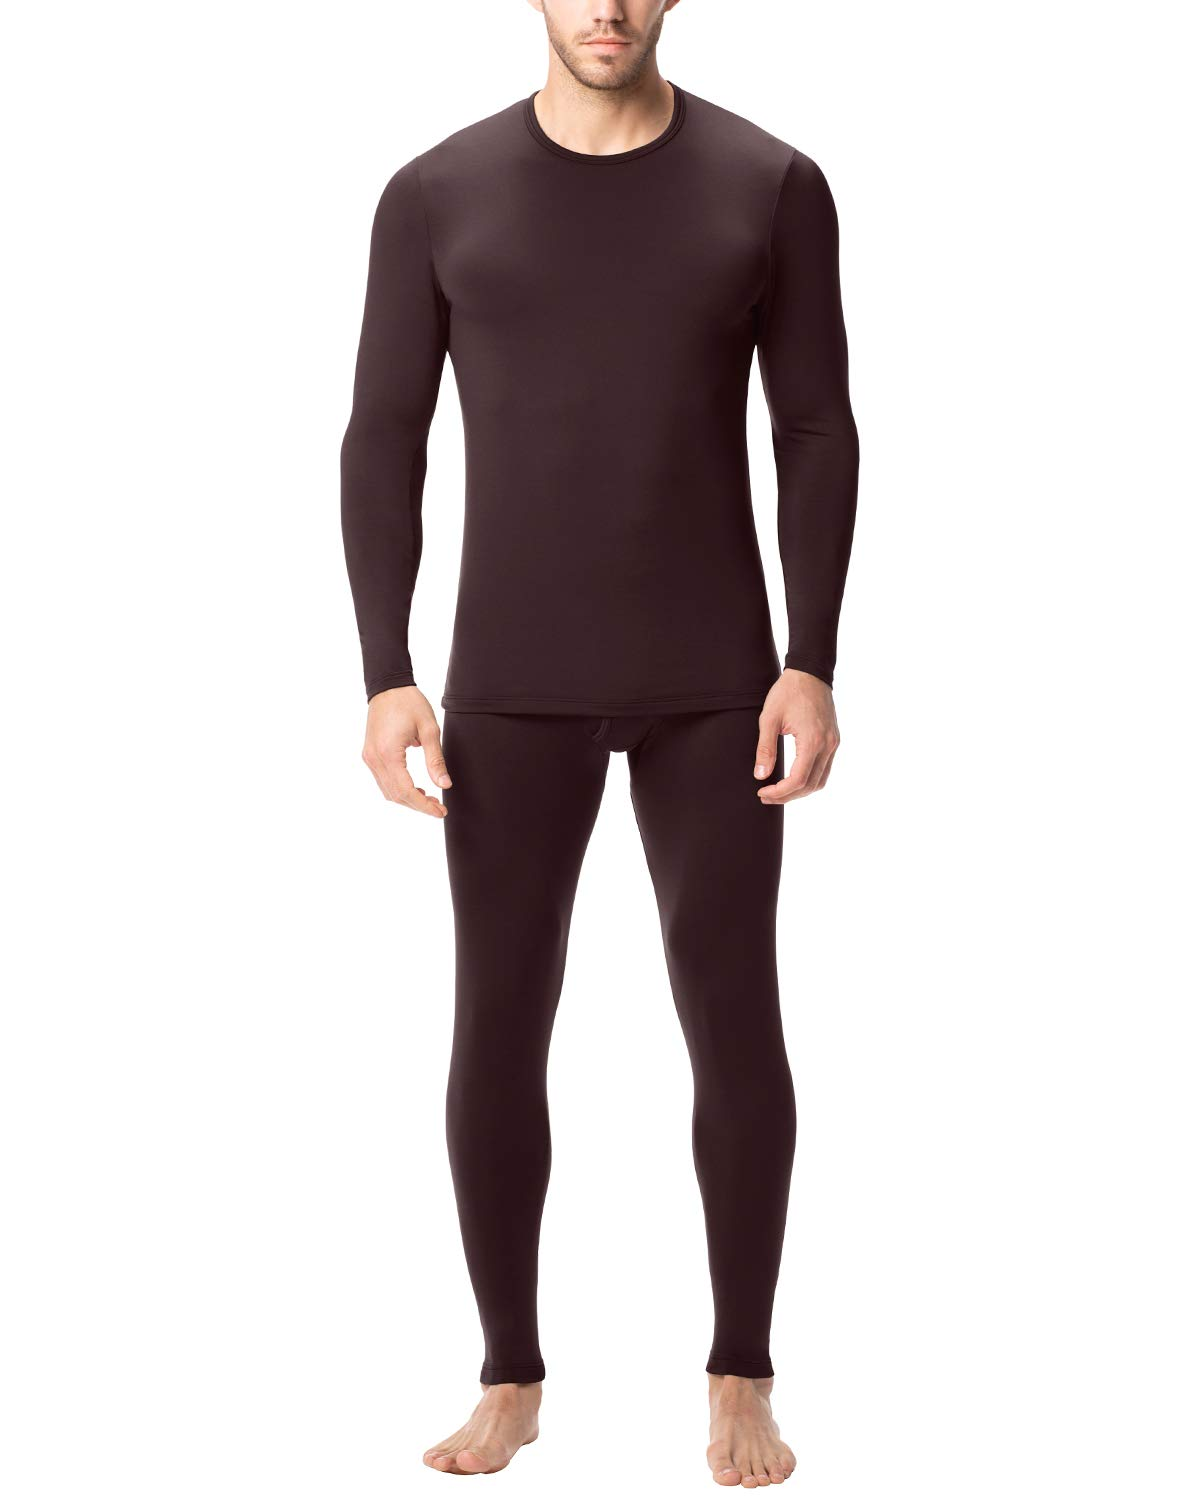 LAPASA Men's Lightweight Thermal Underwear Long John Set Fleece Lined Base Layer Top and Bottom M11 (X-Large, Lightweight Chocolate) by LAPASA